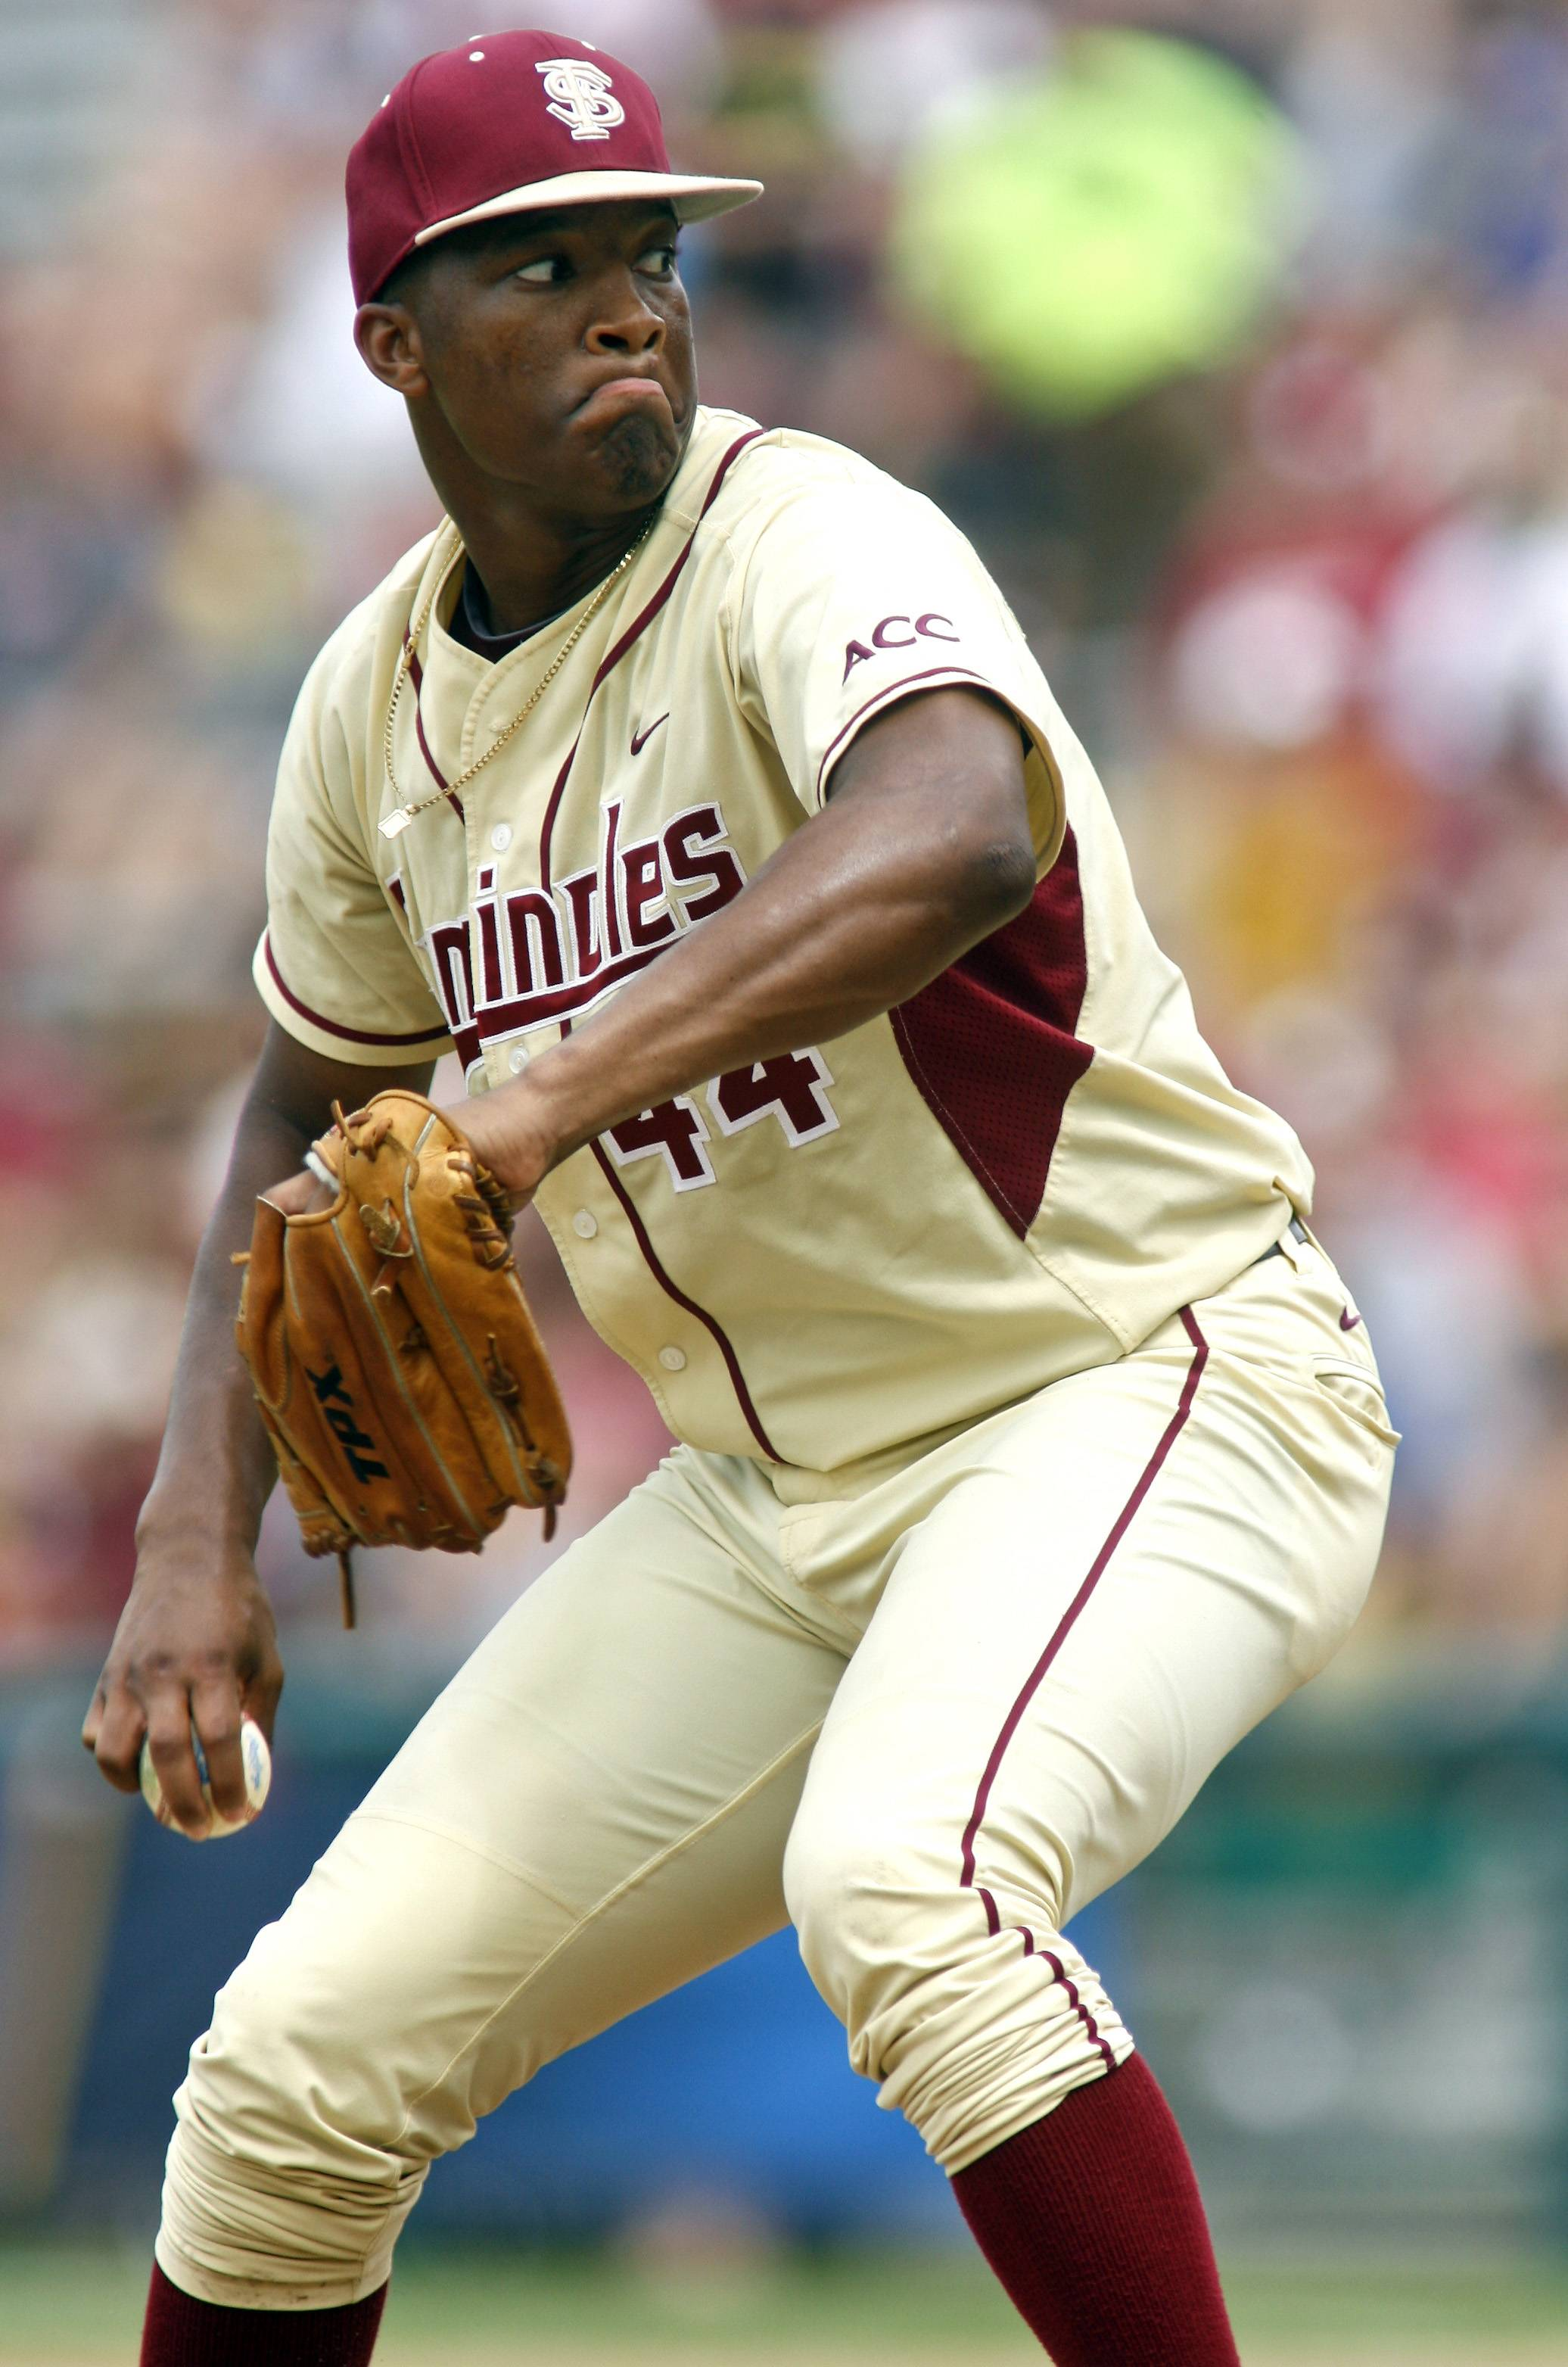 Florida State relief pitcher Jameis Winston is the sixth Heisman winner to play college baseball after winning the award and the first since Bo Jackson in 1986.